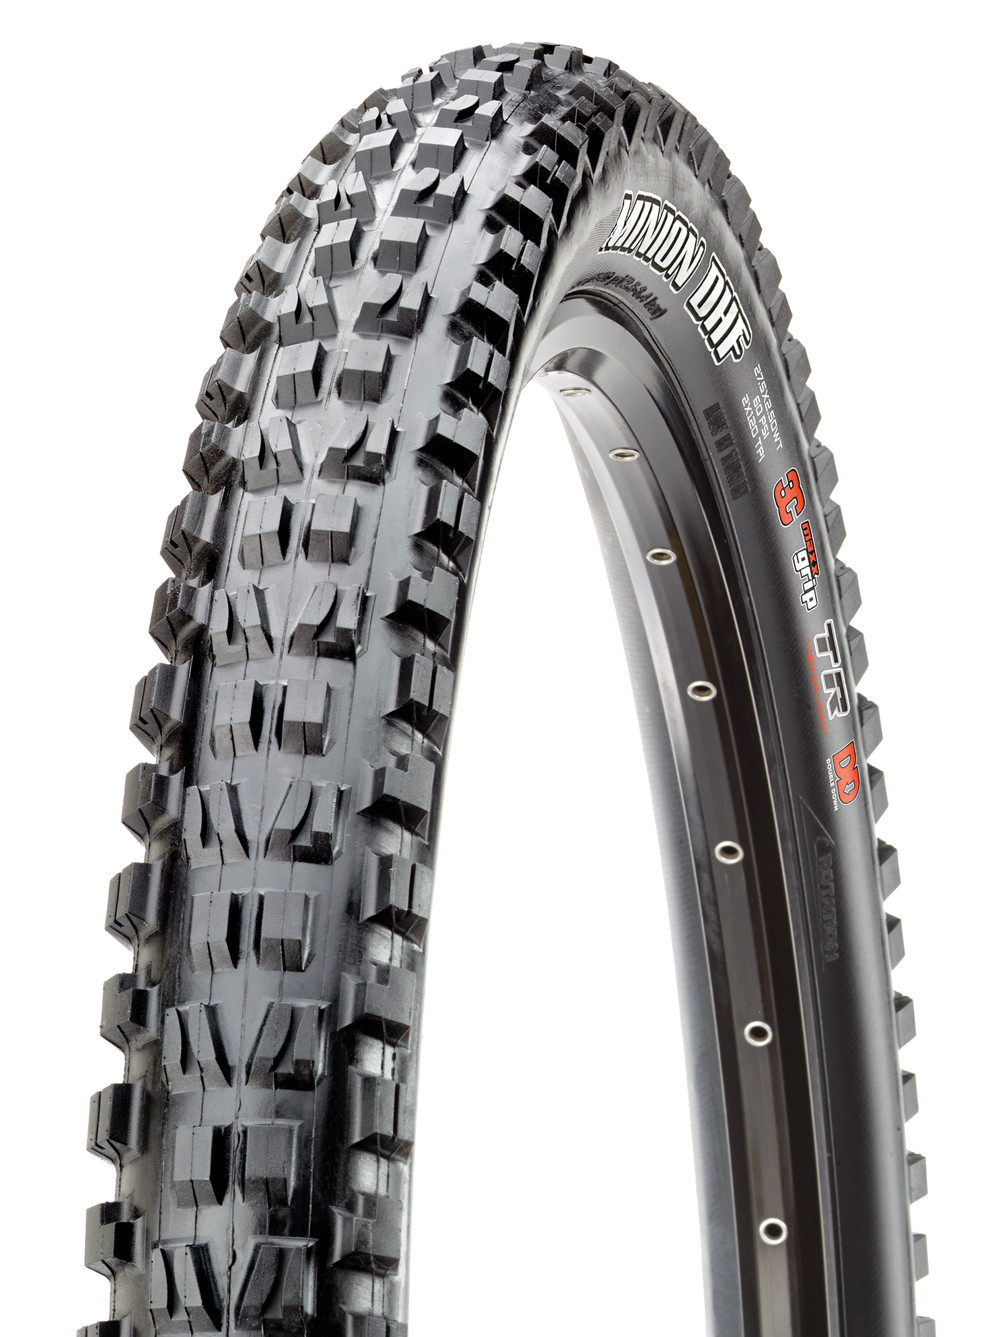 The Complete Guide To Maxxis Mountain Bike Tires Mountain Bikes